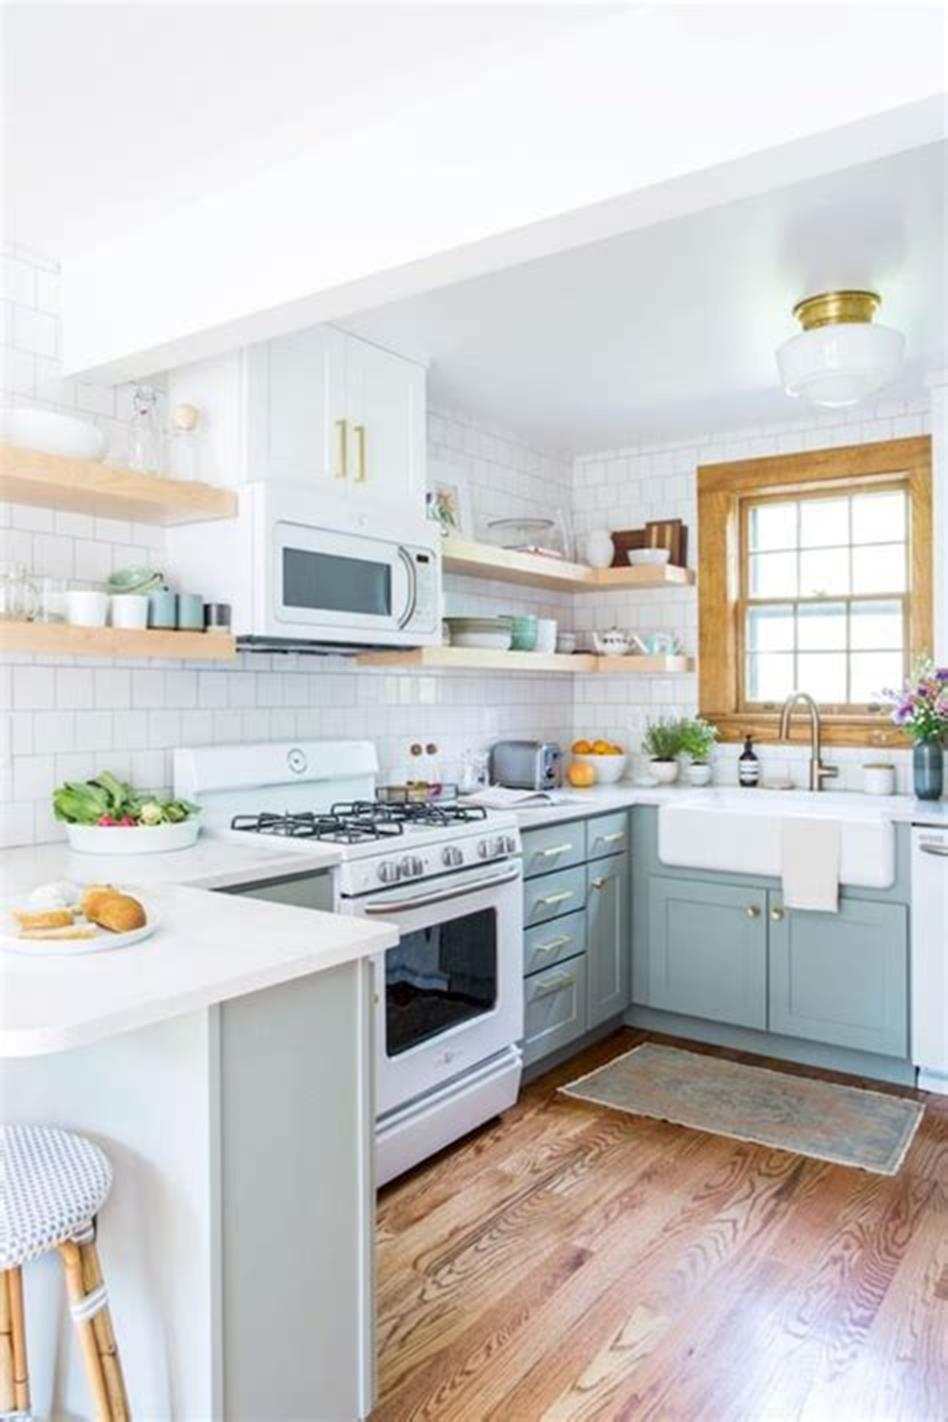 43 Amazing Kitchen Remodeling Ideas for Small Kitchens 2019 34